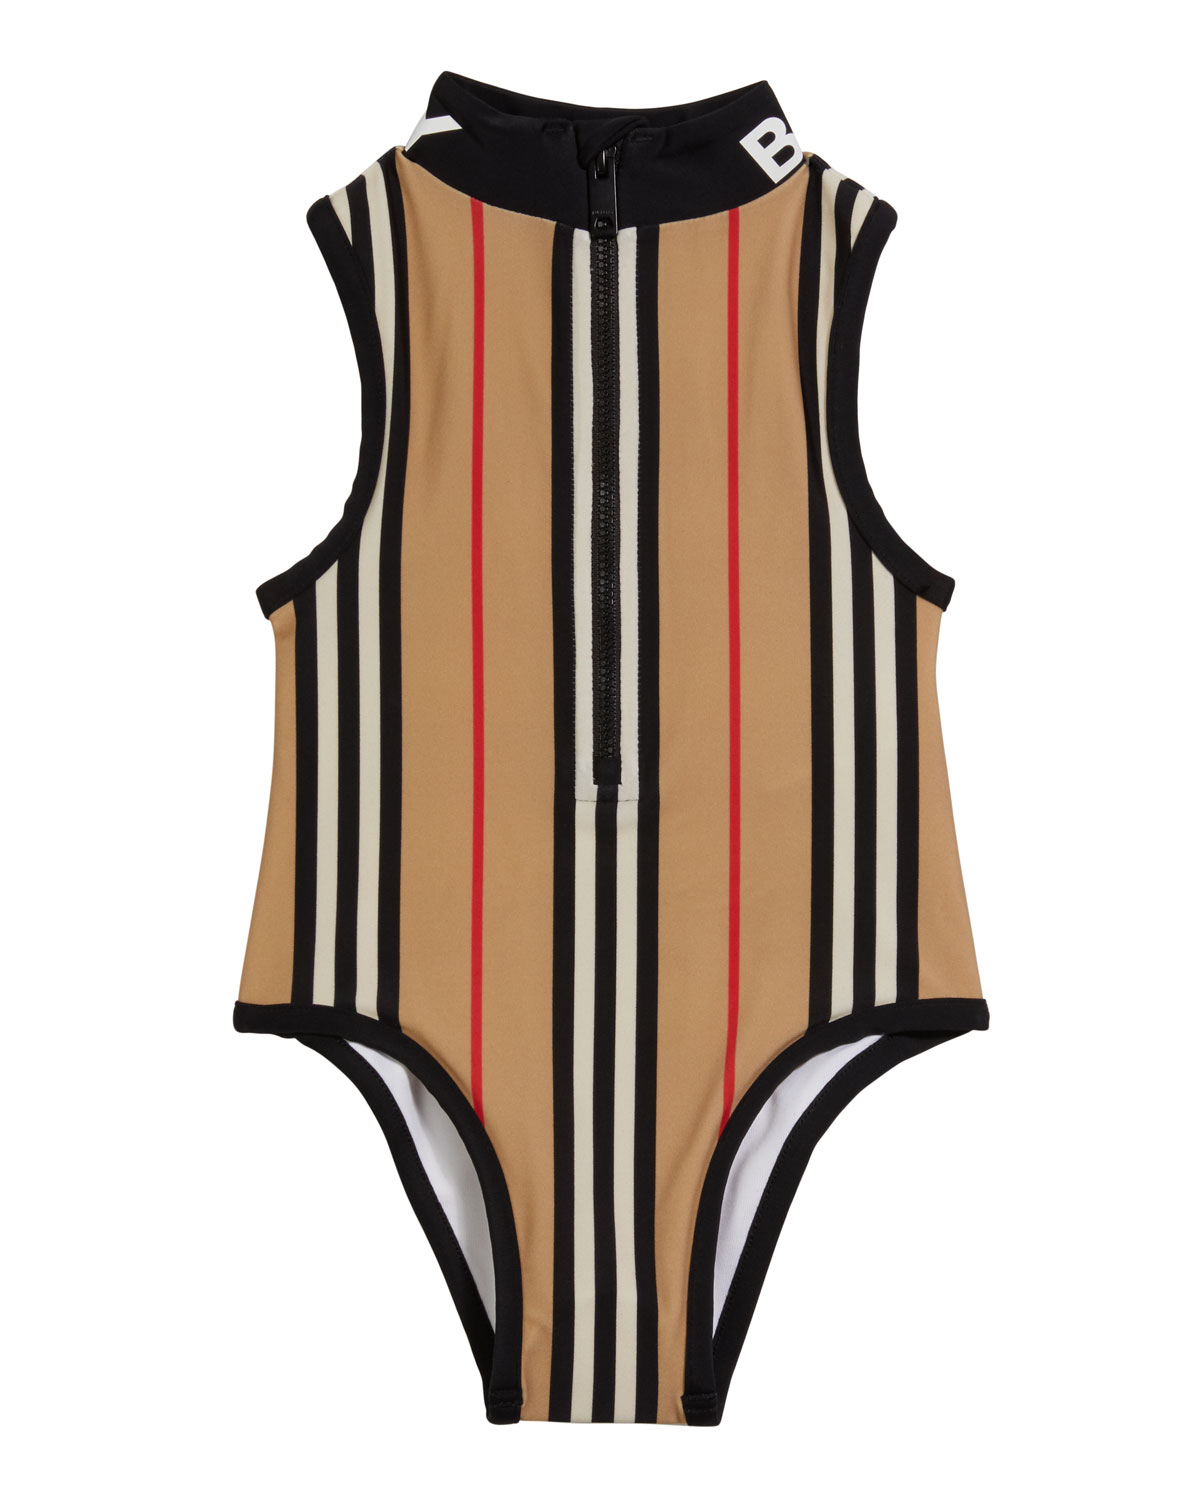 Burberry Girl's Siera Archive Stripe One-Piece Swimsuit, Size 3-14